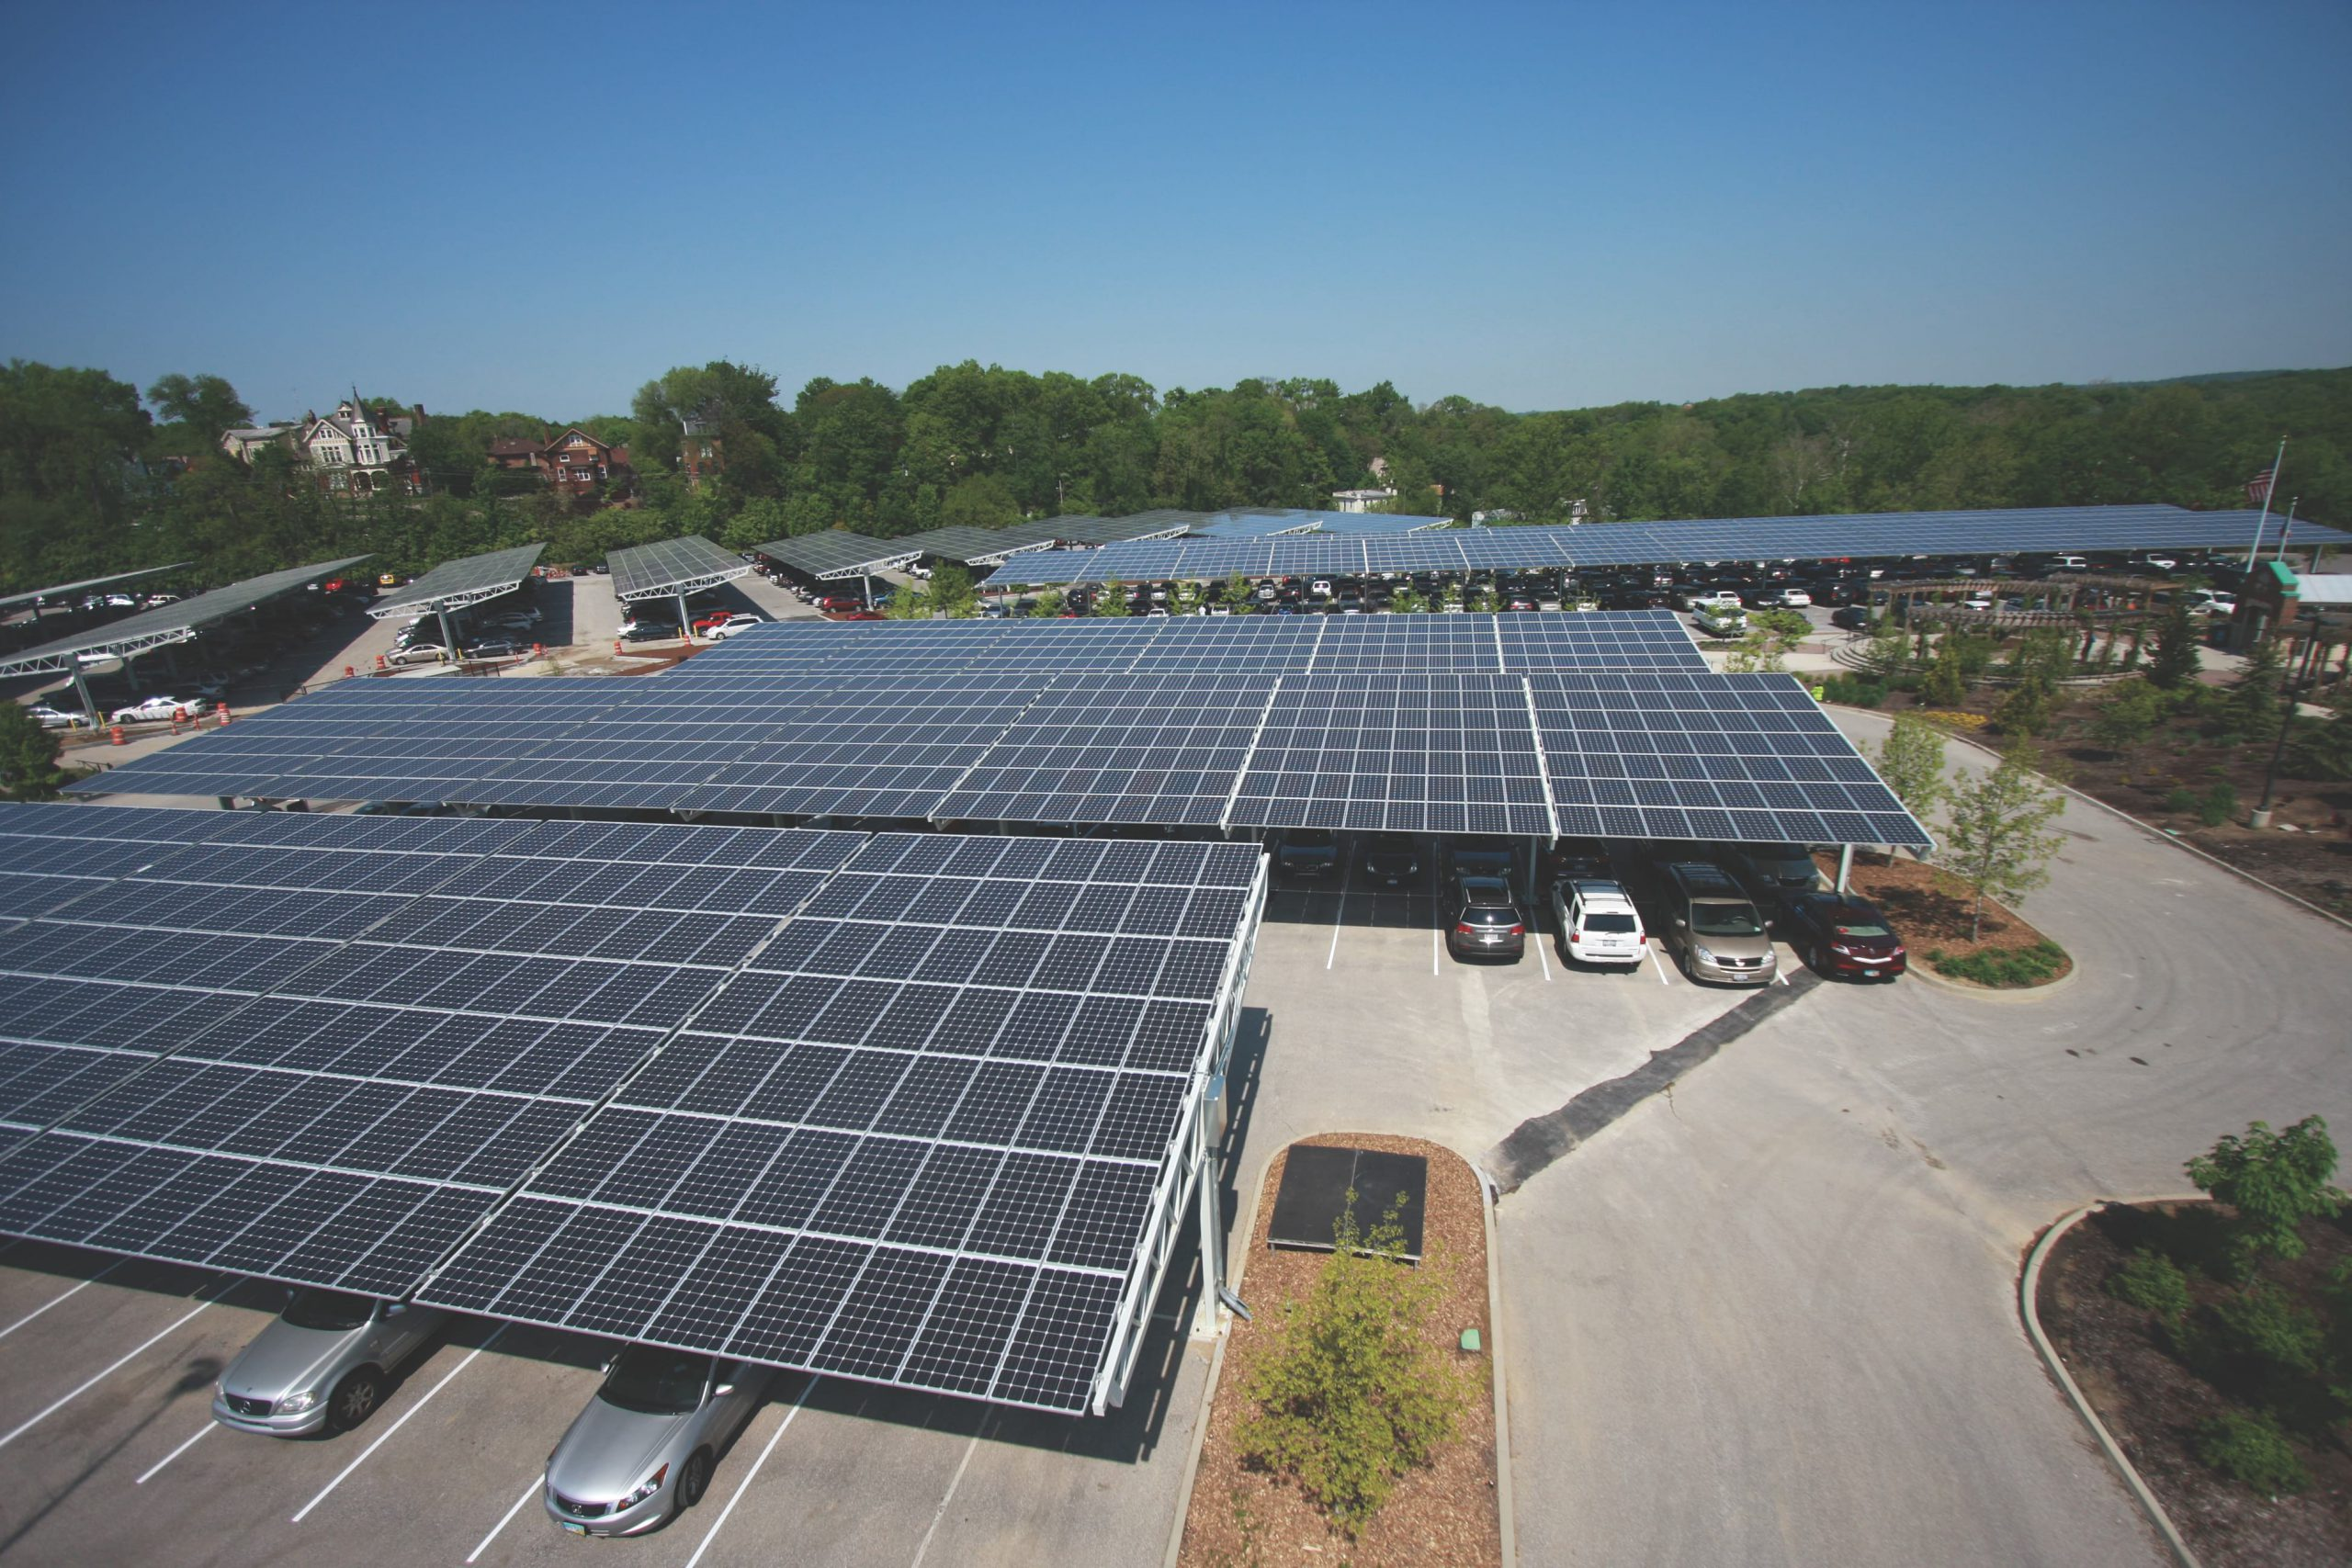 solar panels installed on car parking structures on a sunny day